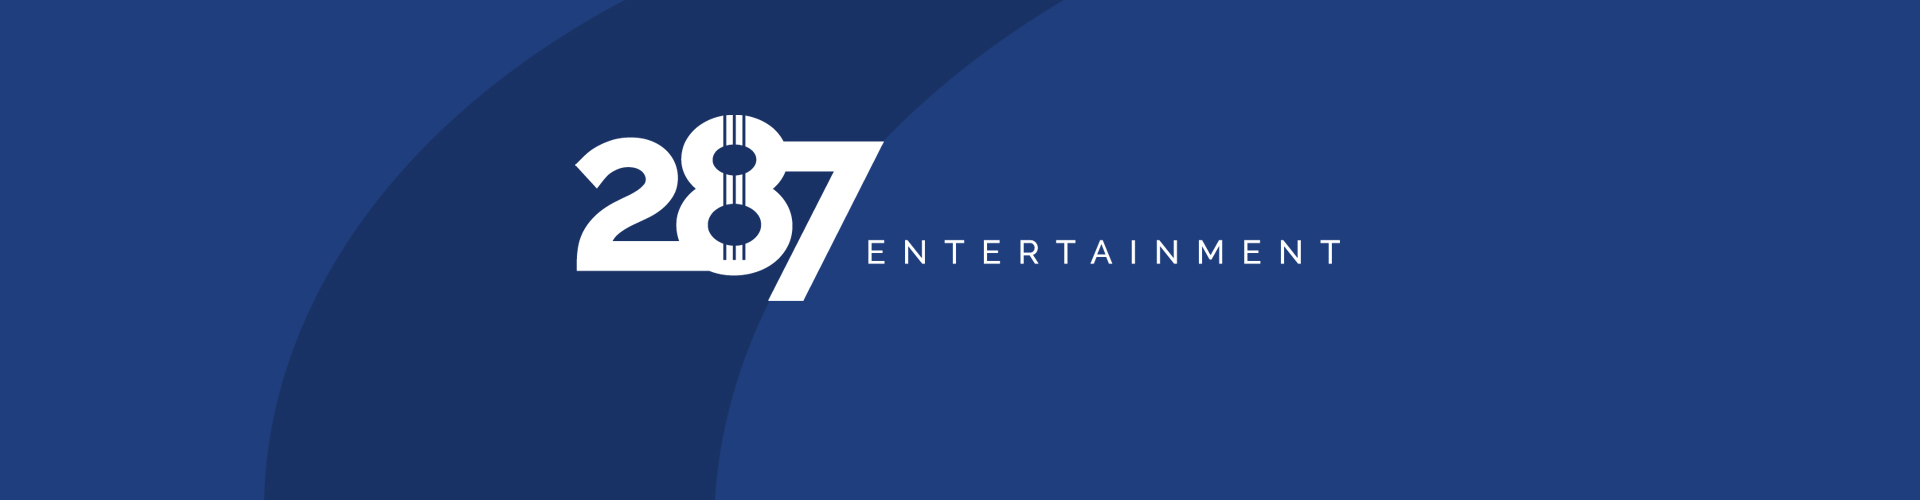 About | 287 Entertainment